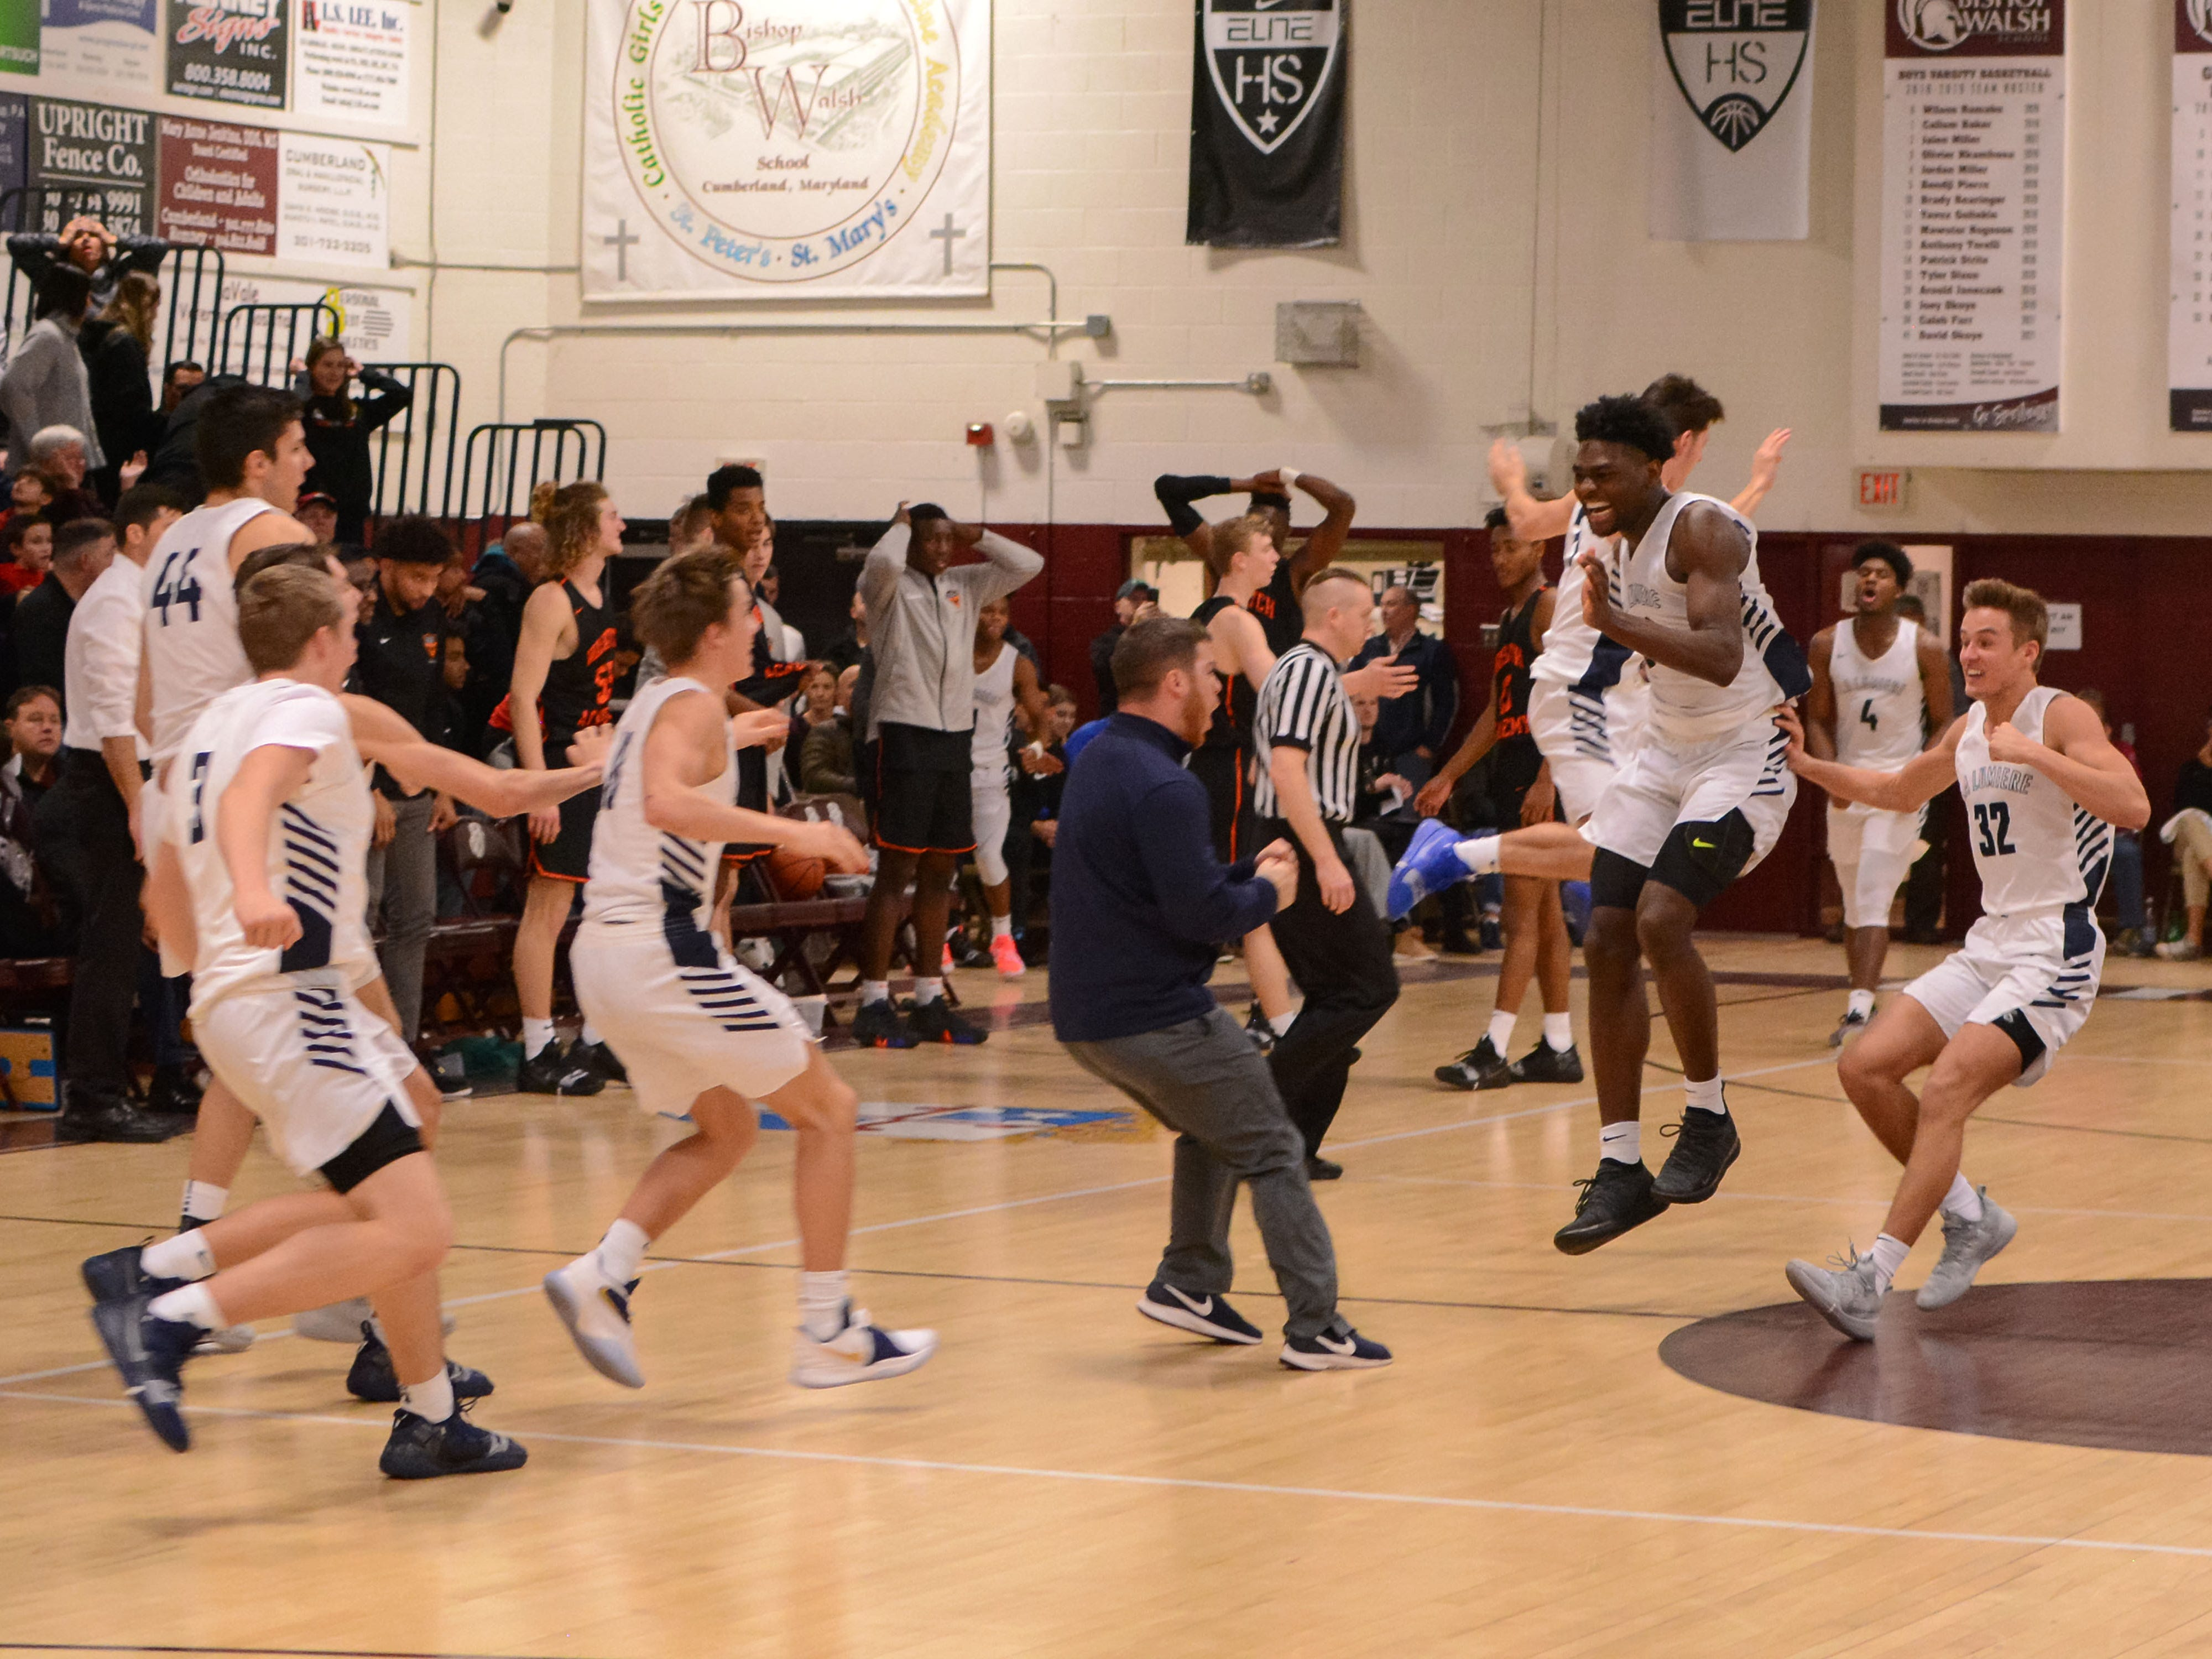 Members of the La Lumiere basketball team, which is ranked No. 1 in the country, including Isaiah Stewart (33) and Gerald Drumgoole (4), celebrate their 53-52 win over Wasatch Academy of Utah during the Bob Kirk Invitational in Cumberland, Maryland.